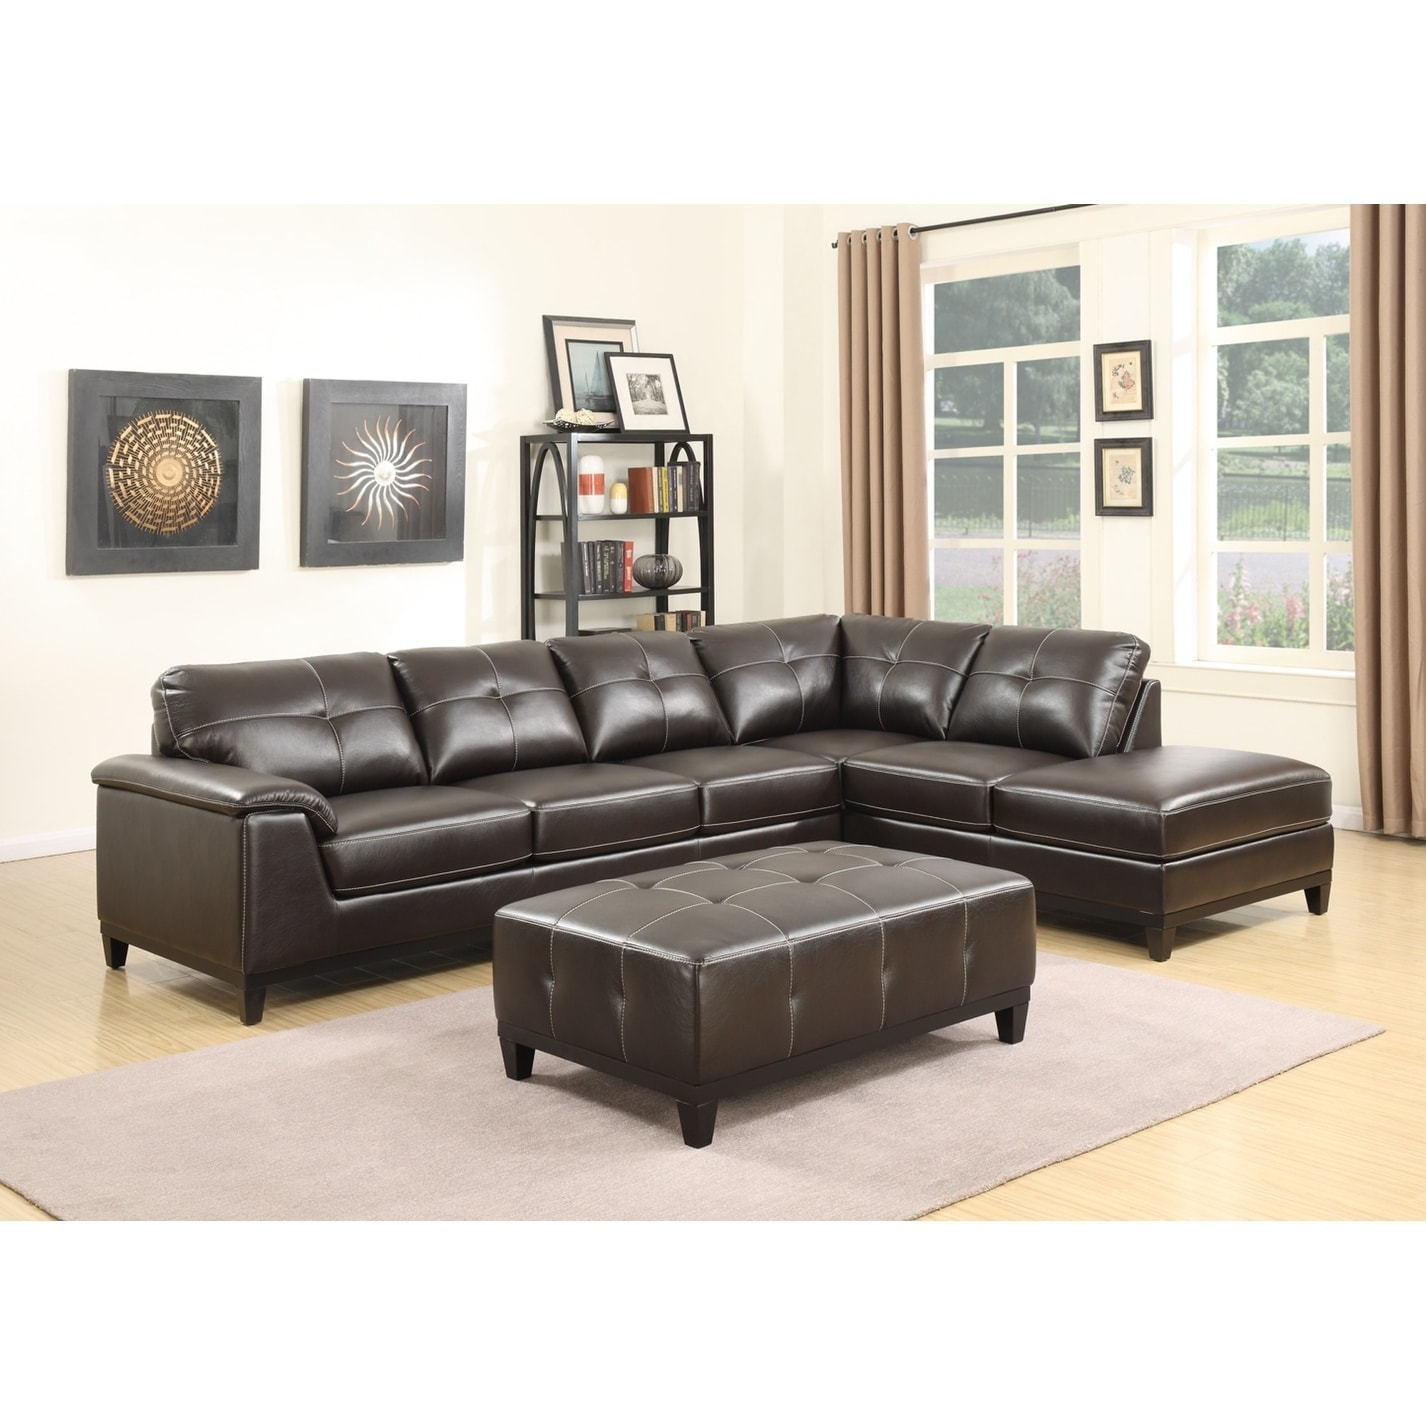 Top Rated Sectional Sofas For Less